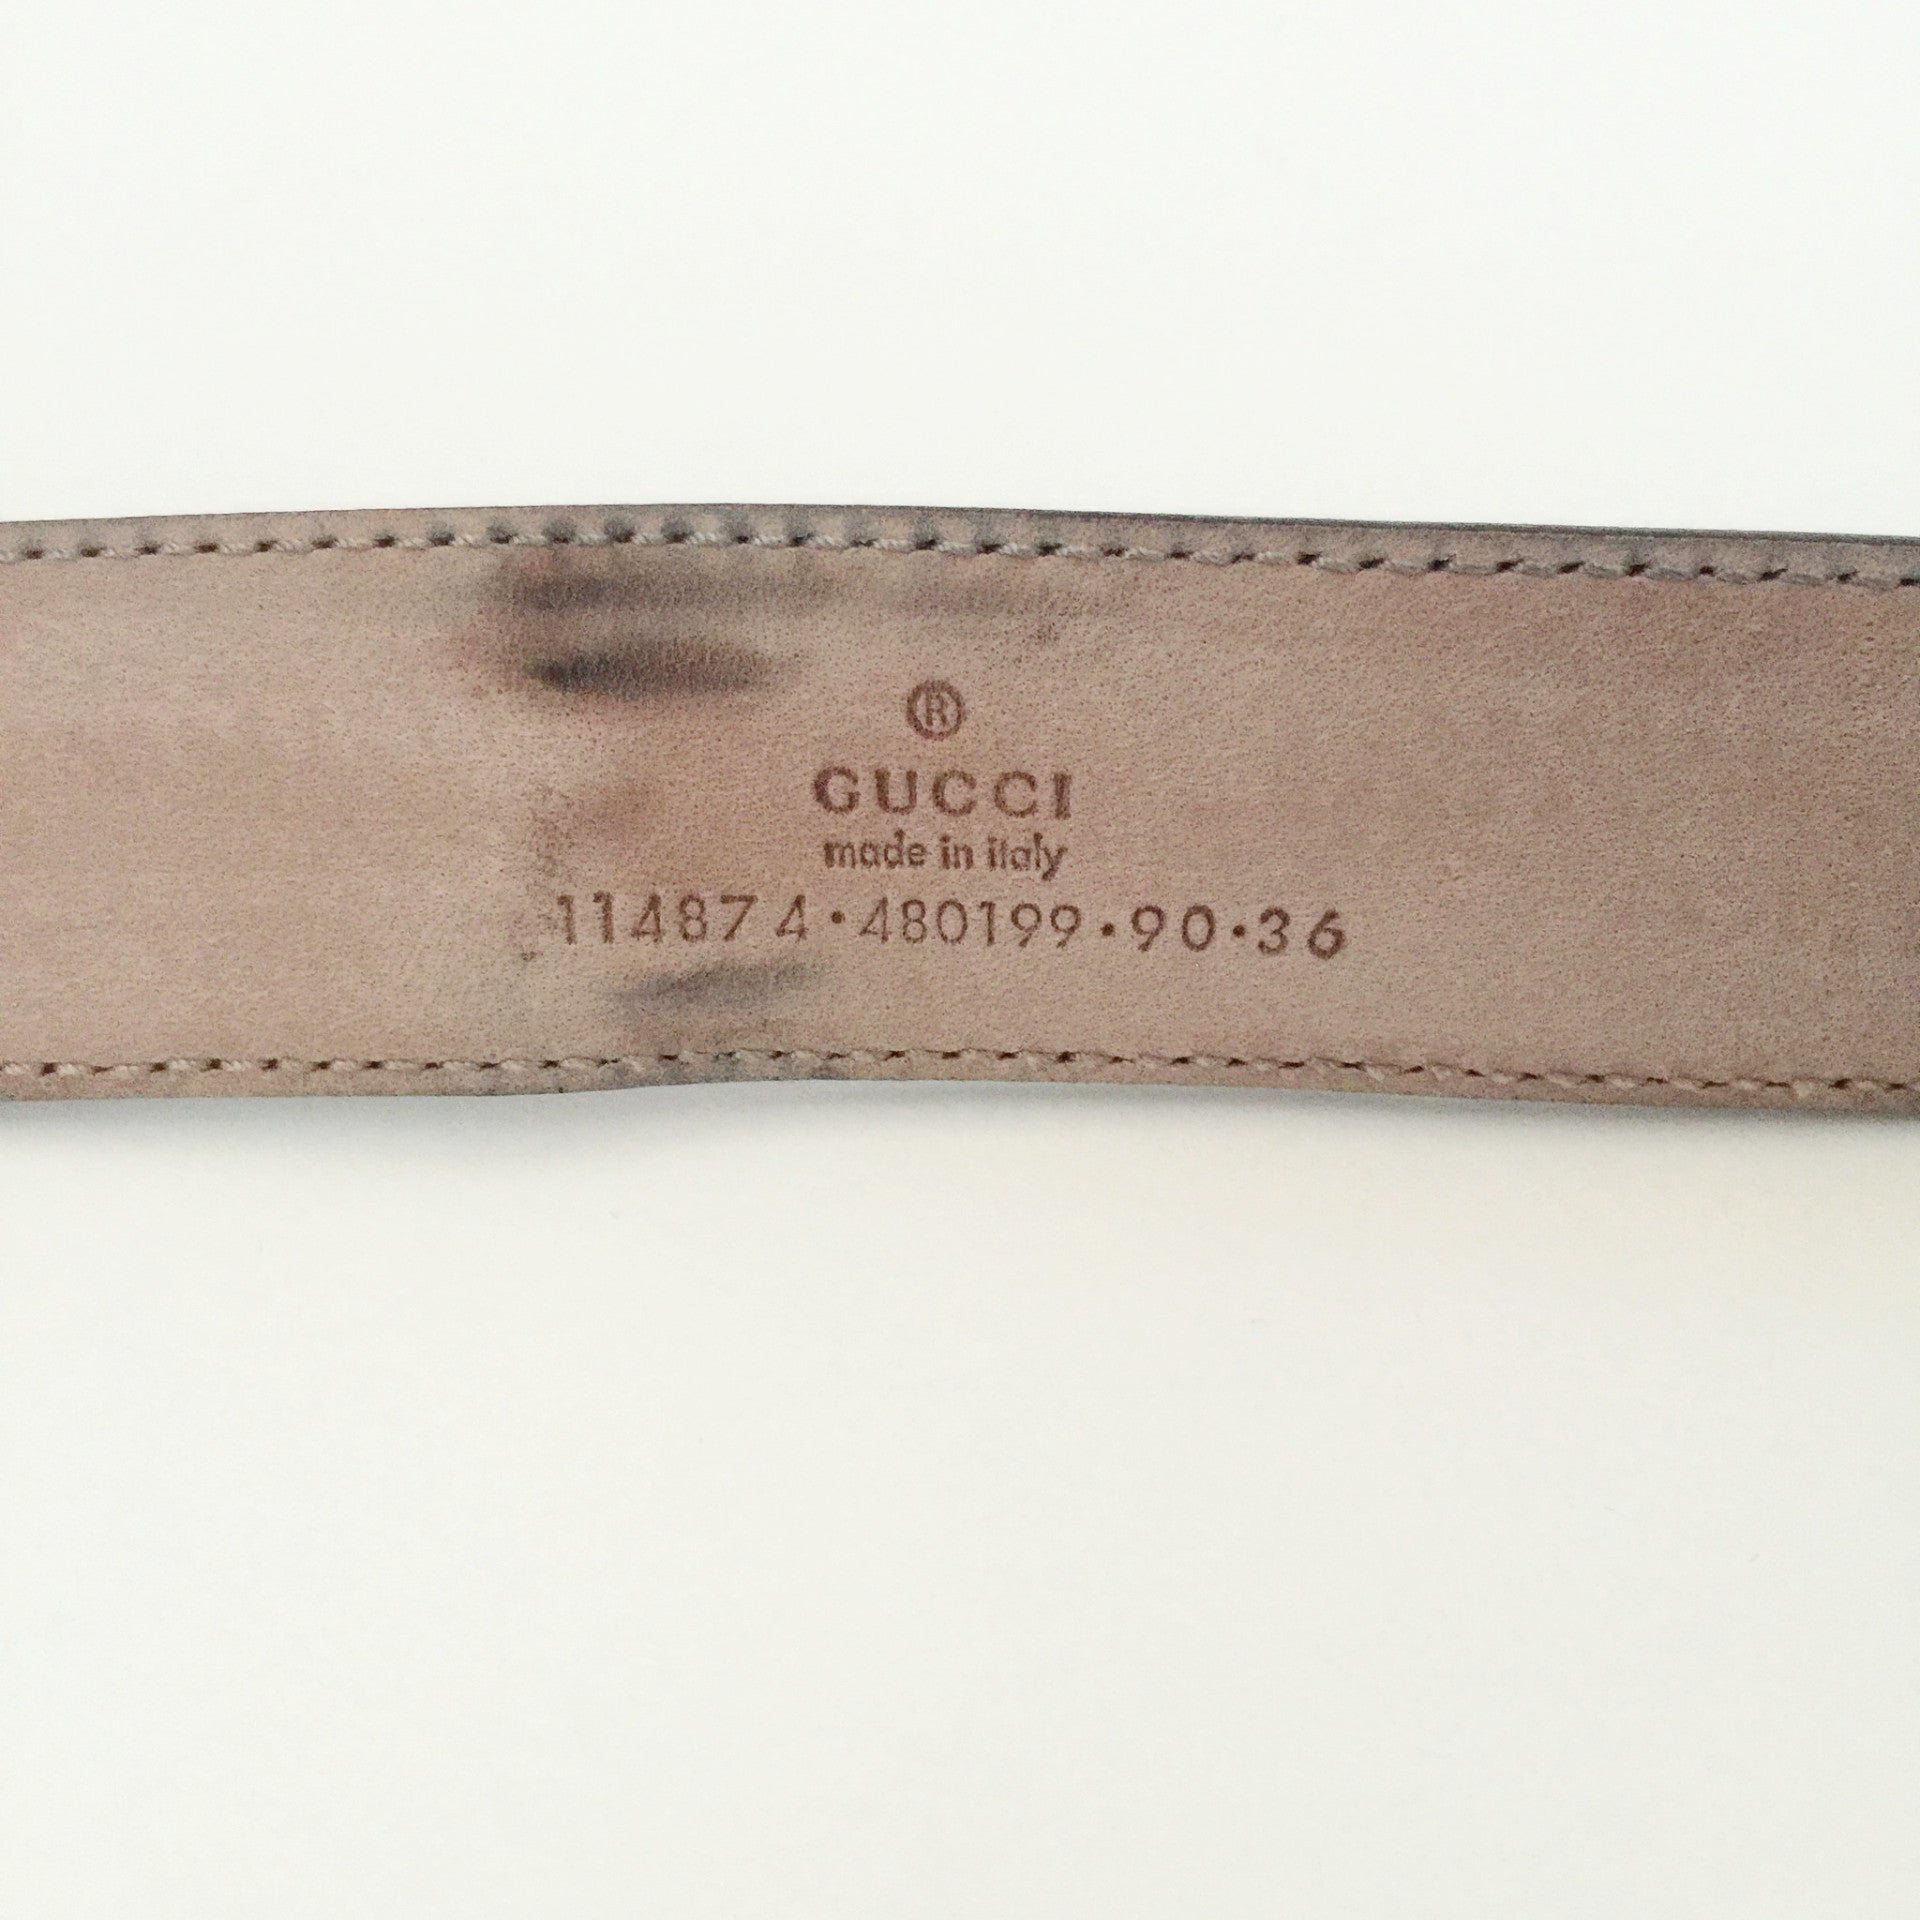 Authentic GUCCI Crystal Belt Size 90/36